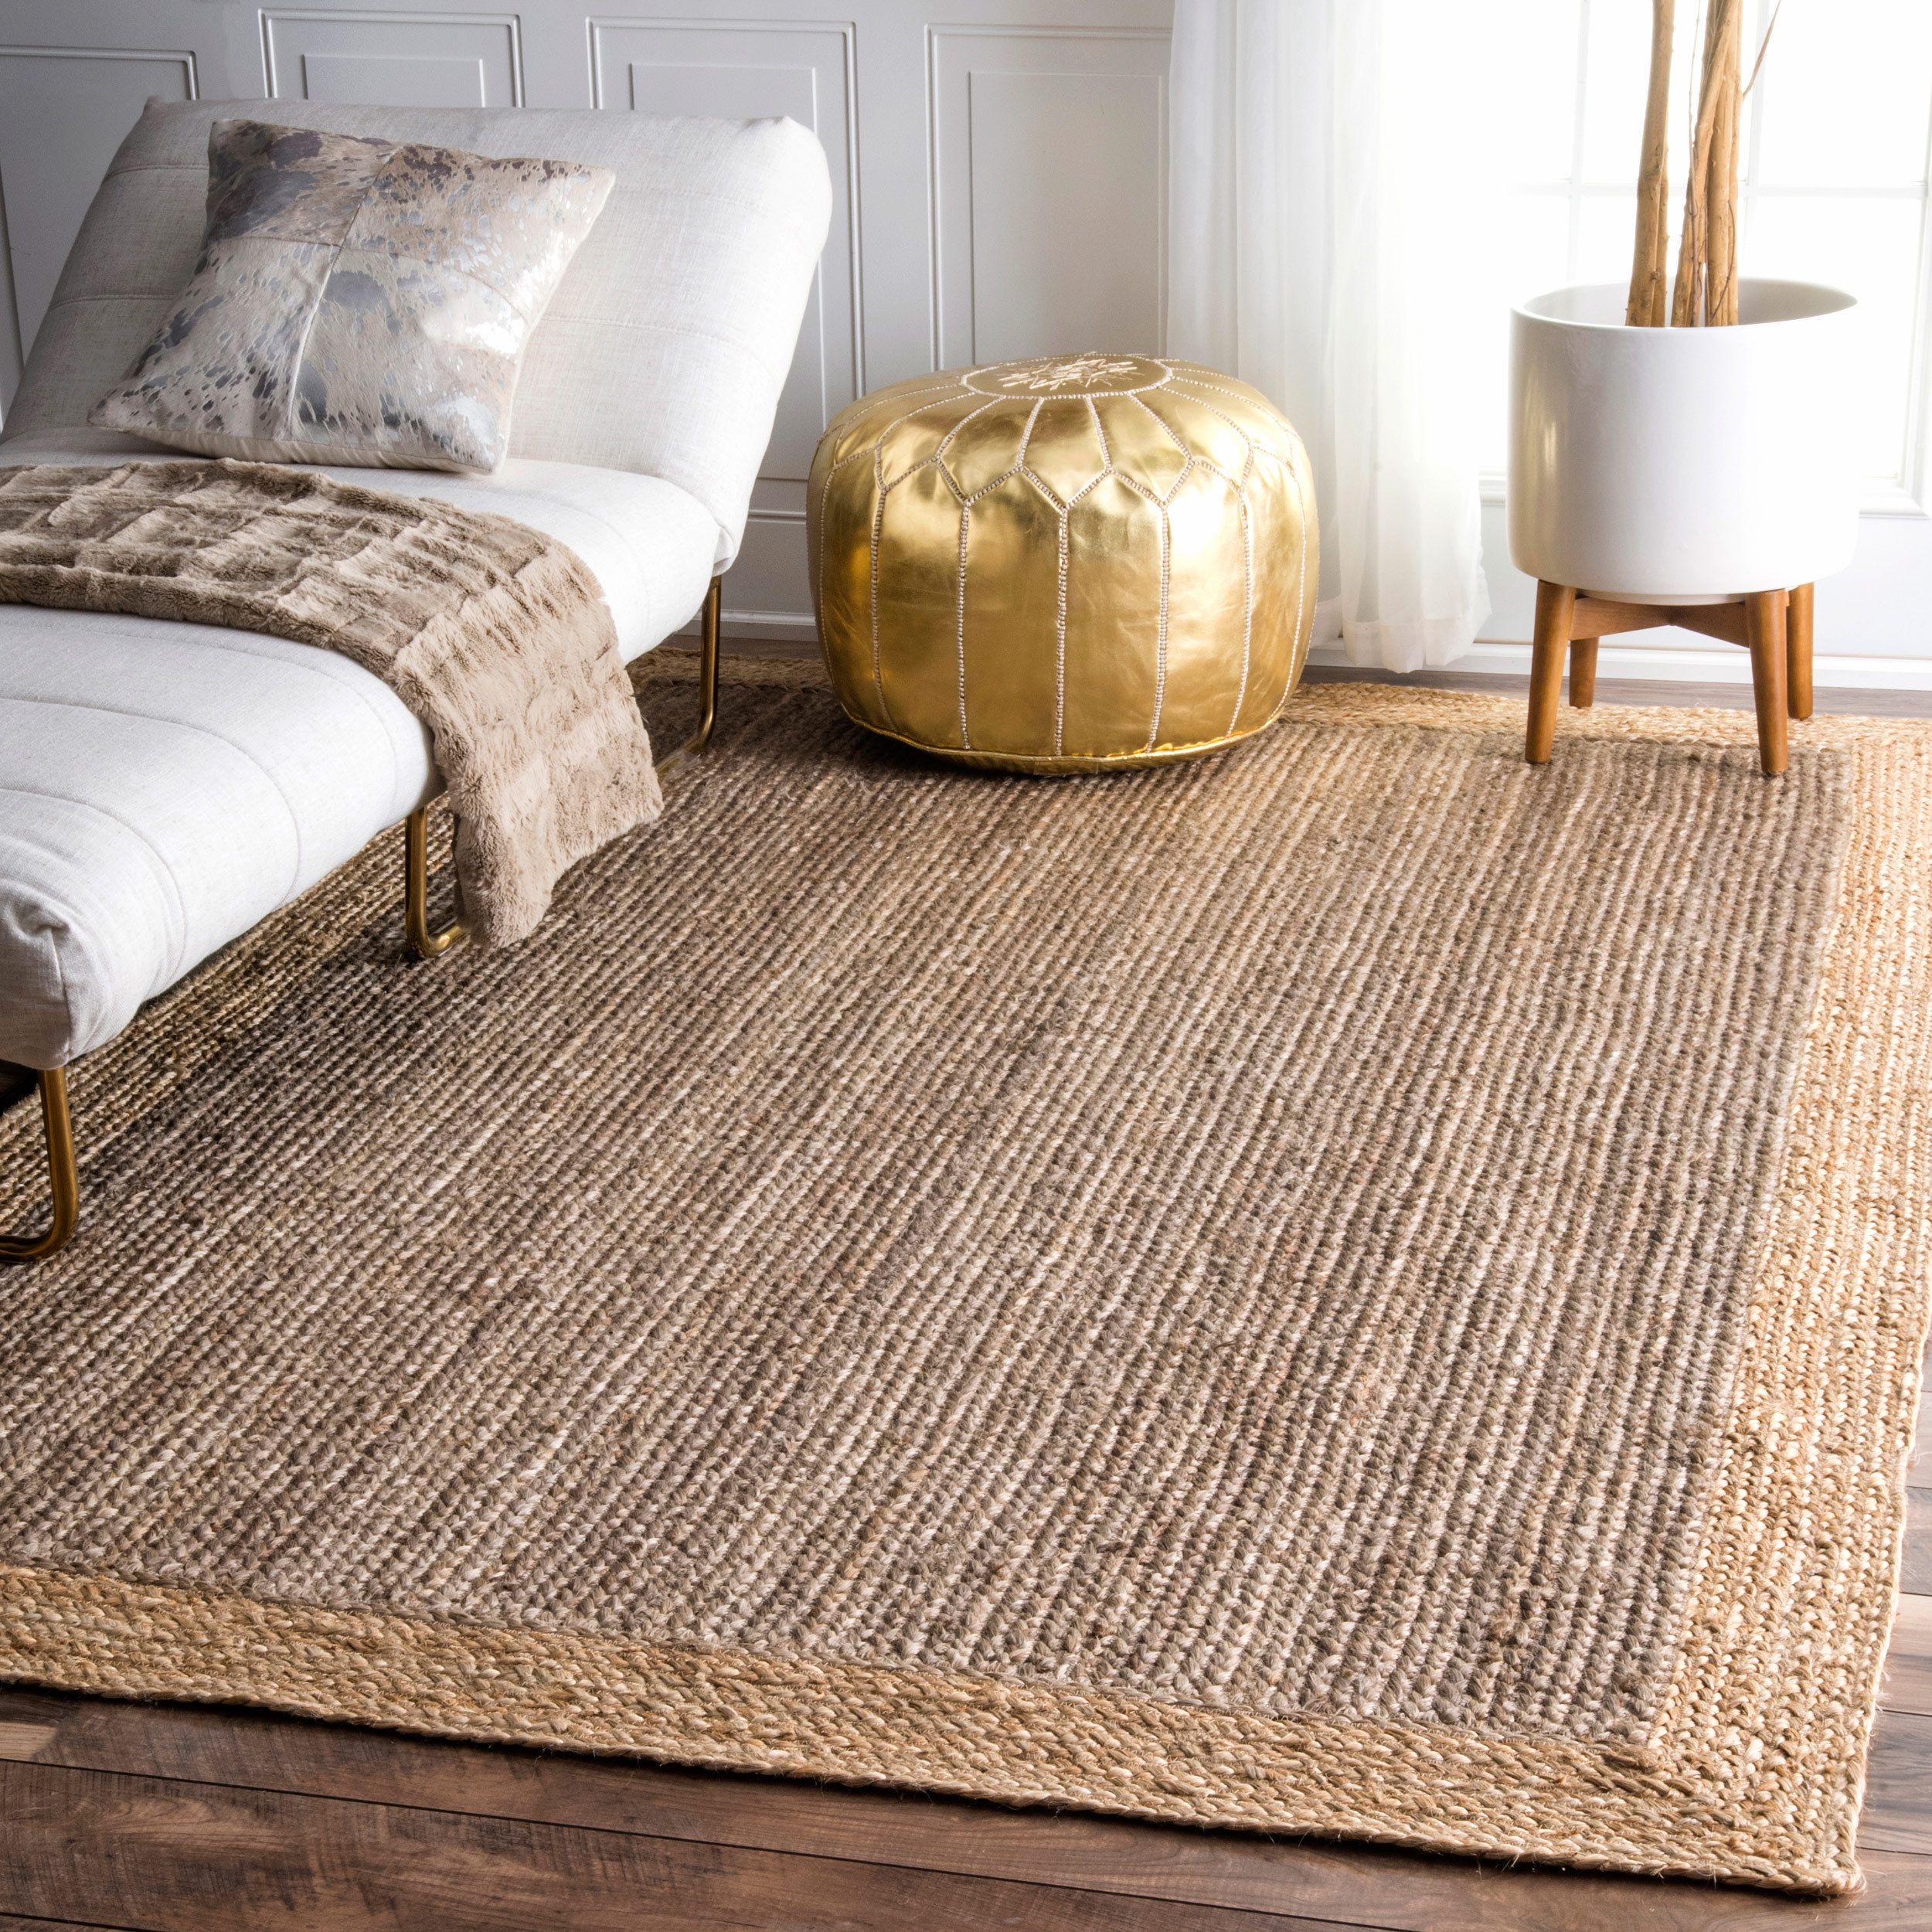 floors ideas rug runner round carpet your grey dining navy in white design living room flooring plush rugs stores blue decor simple pier circle area home for sisal jute